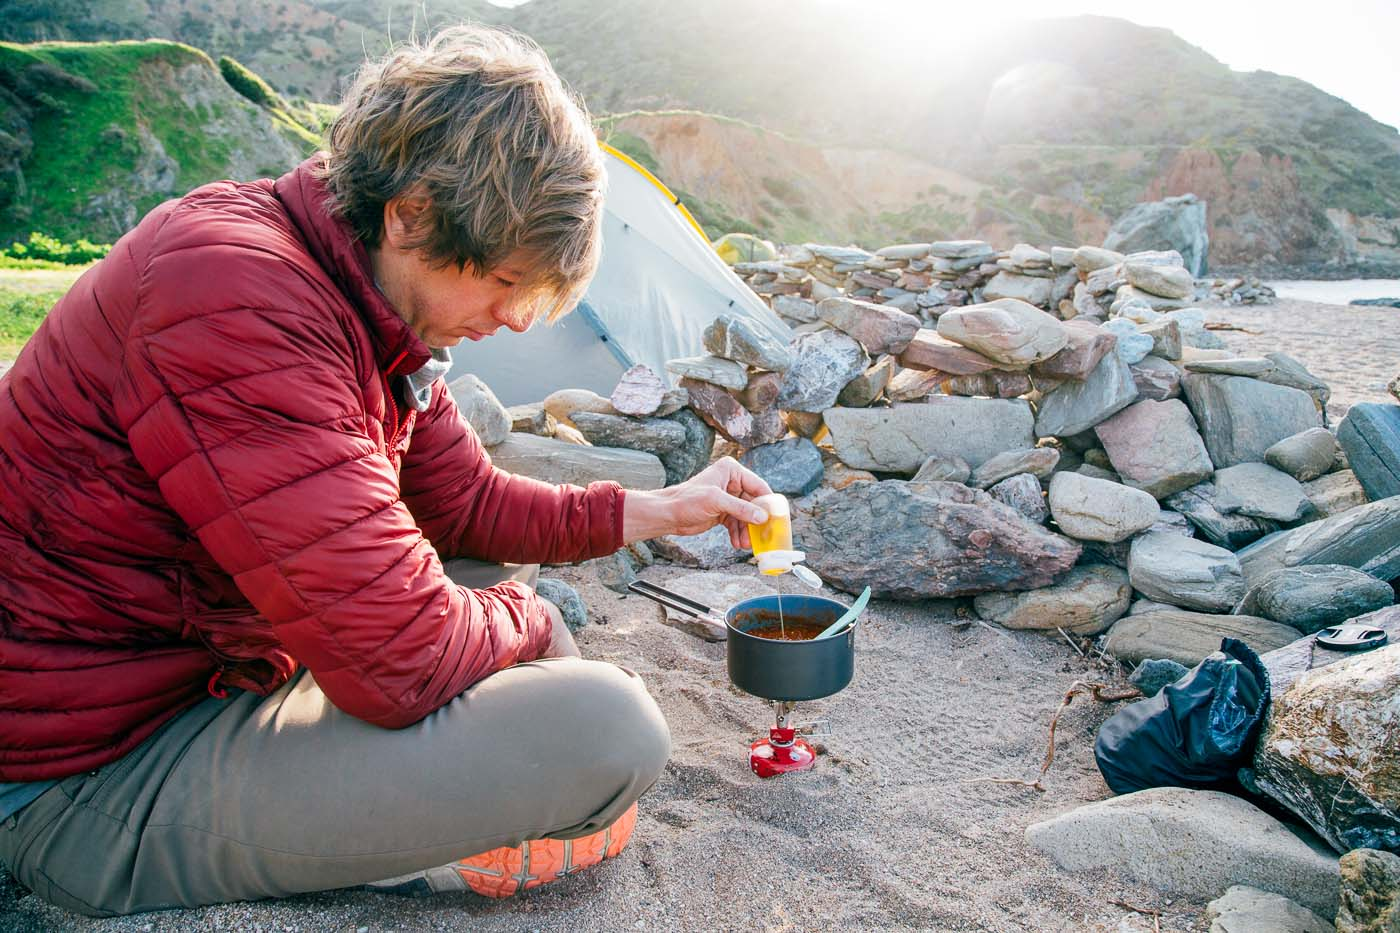 A man adding oil to a backpacking pot full of chili.